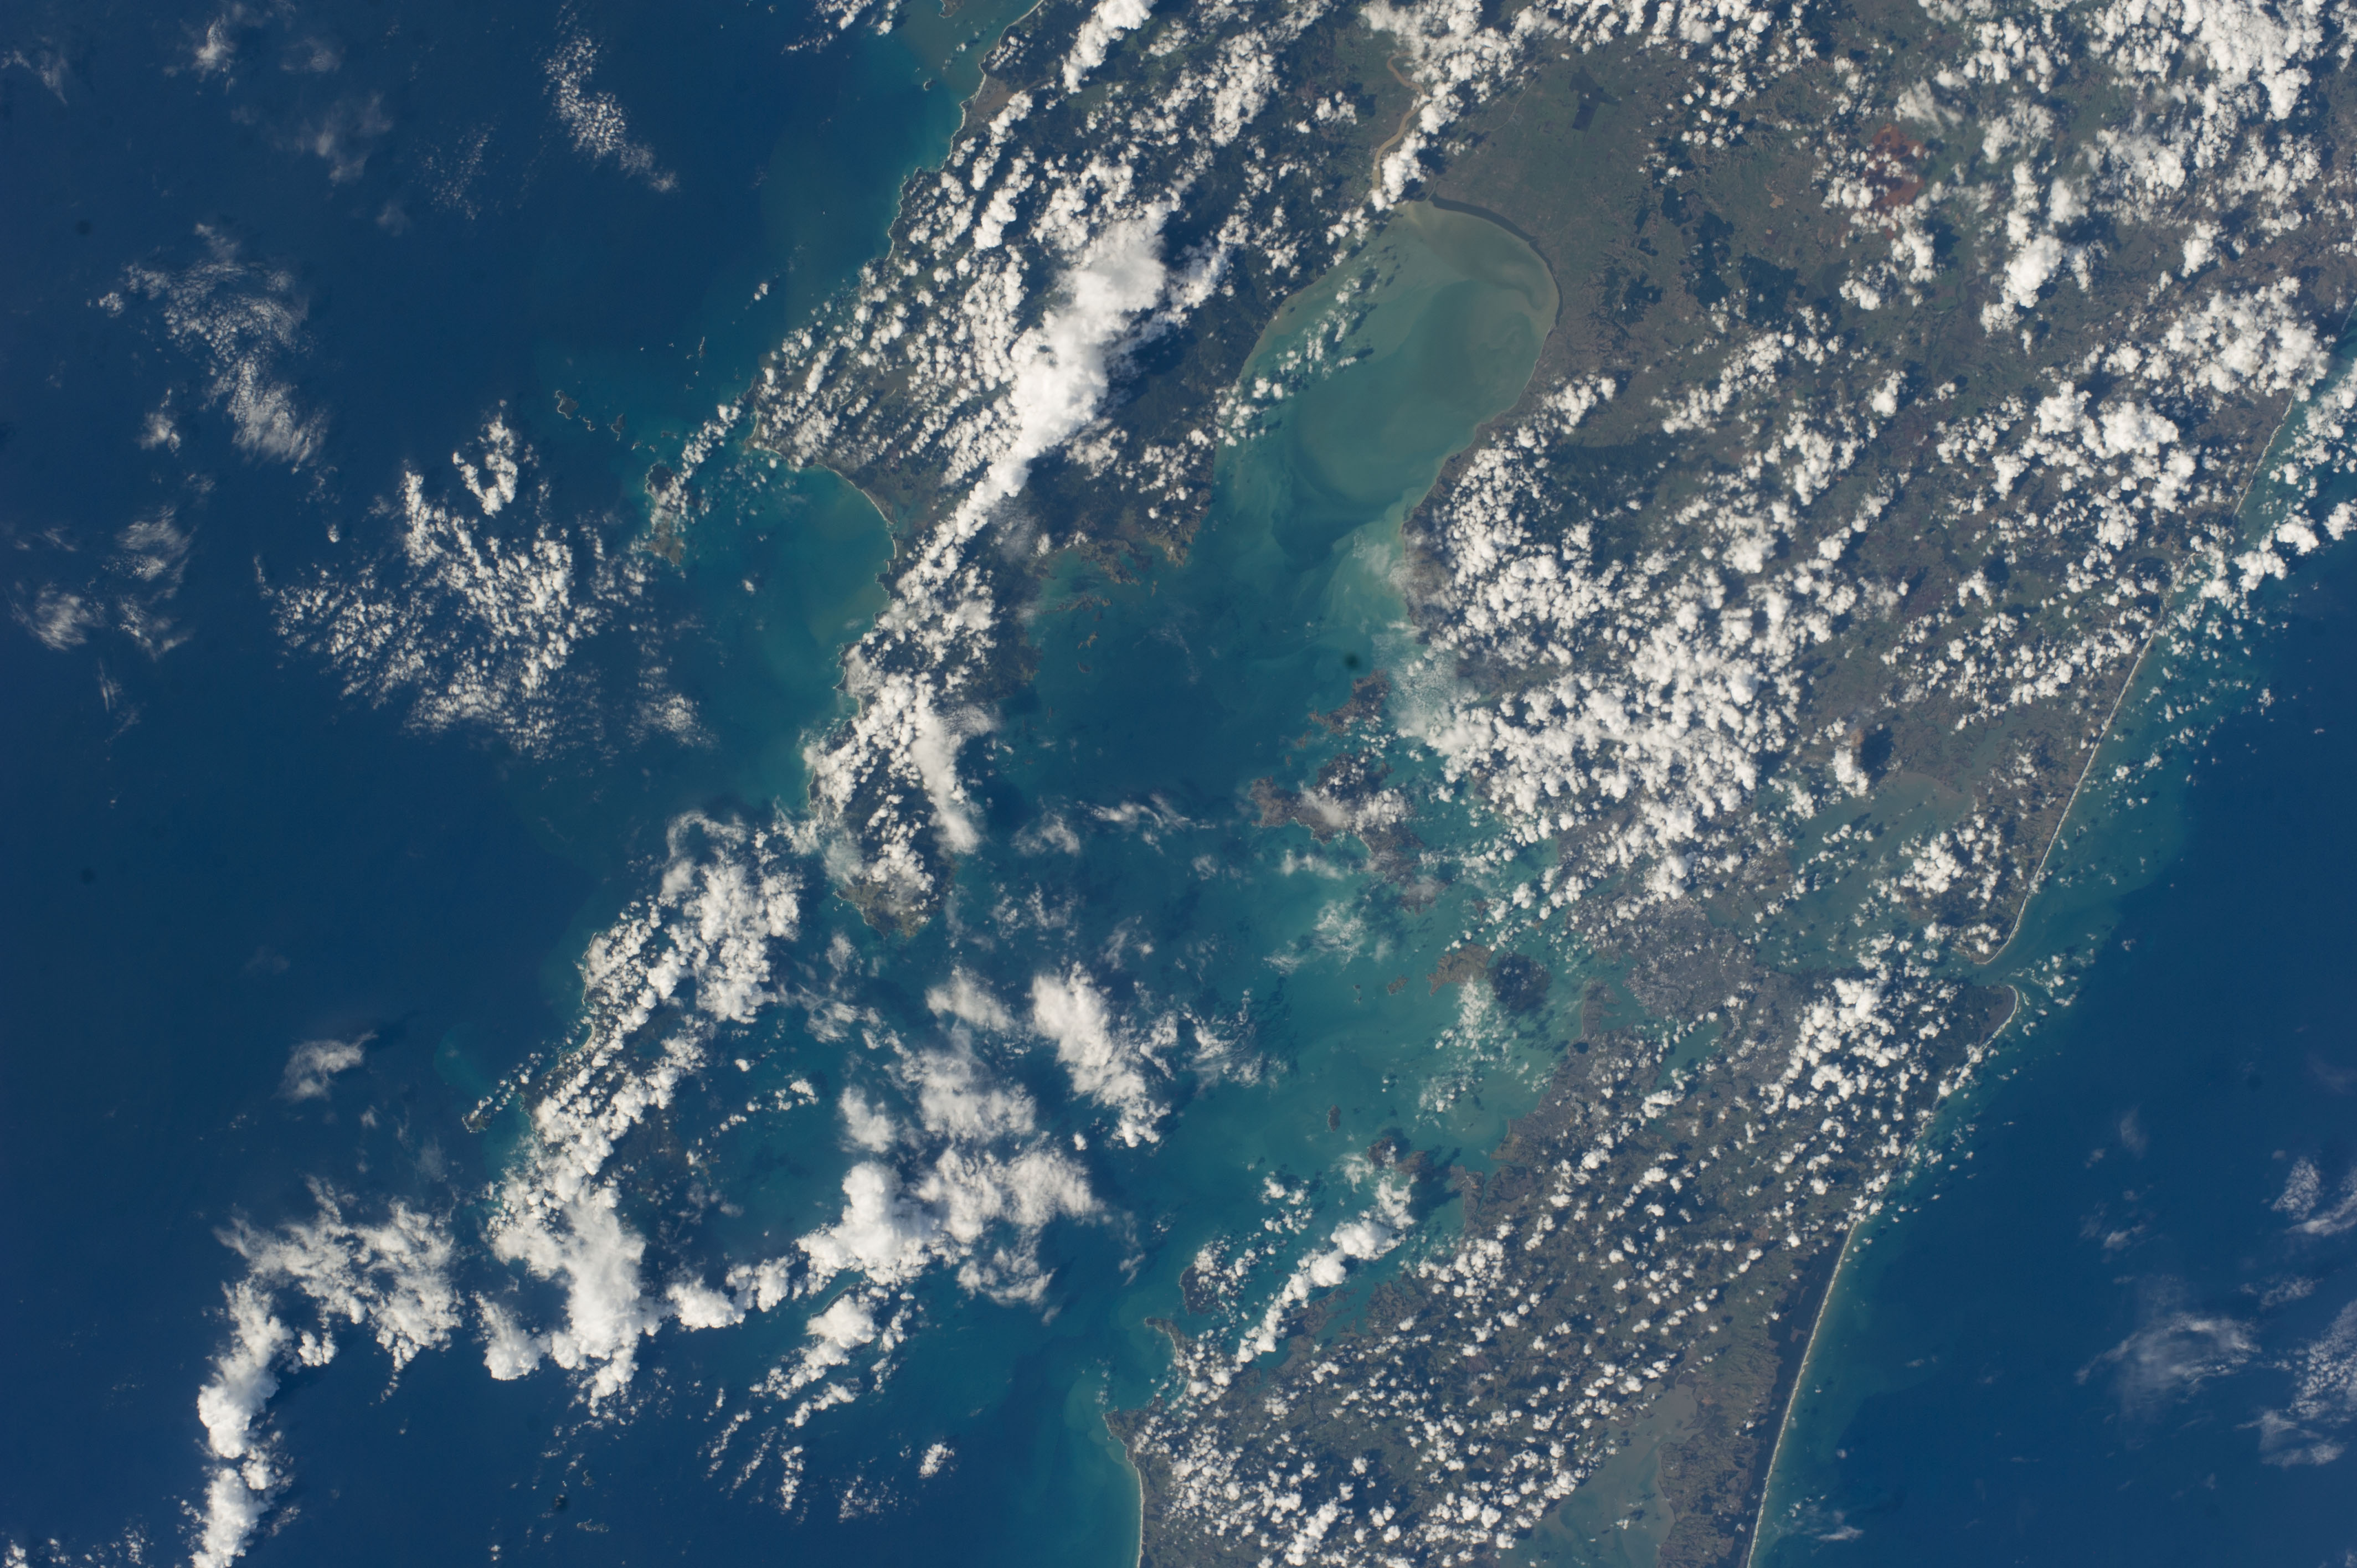 ISS039-E-012868